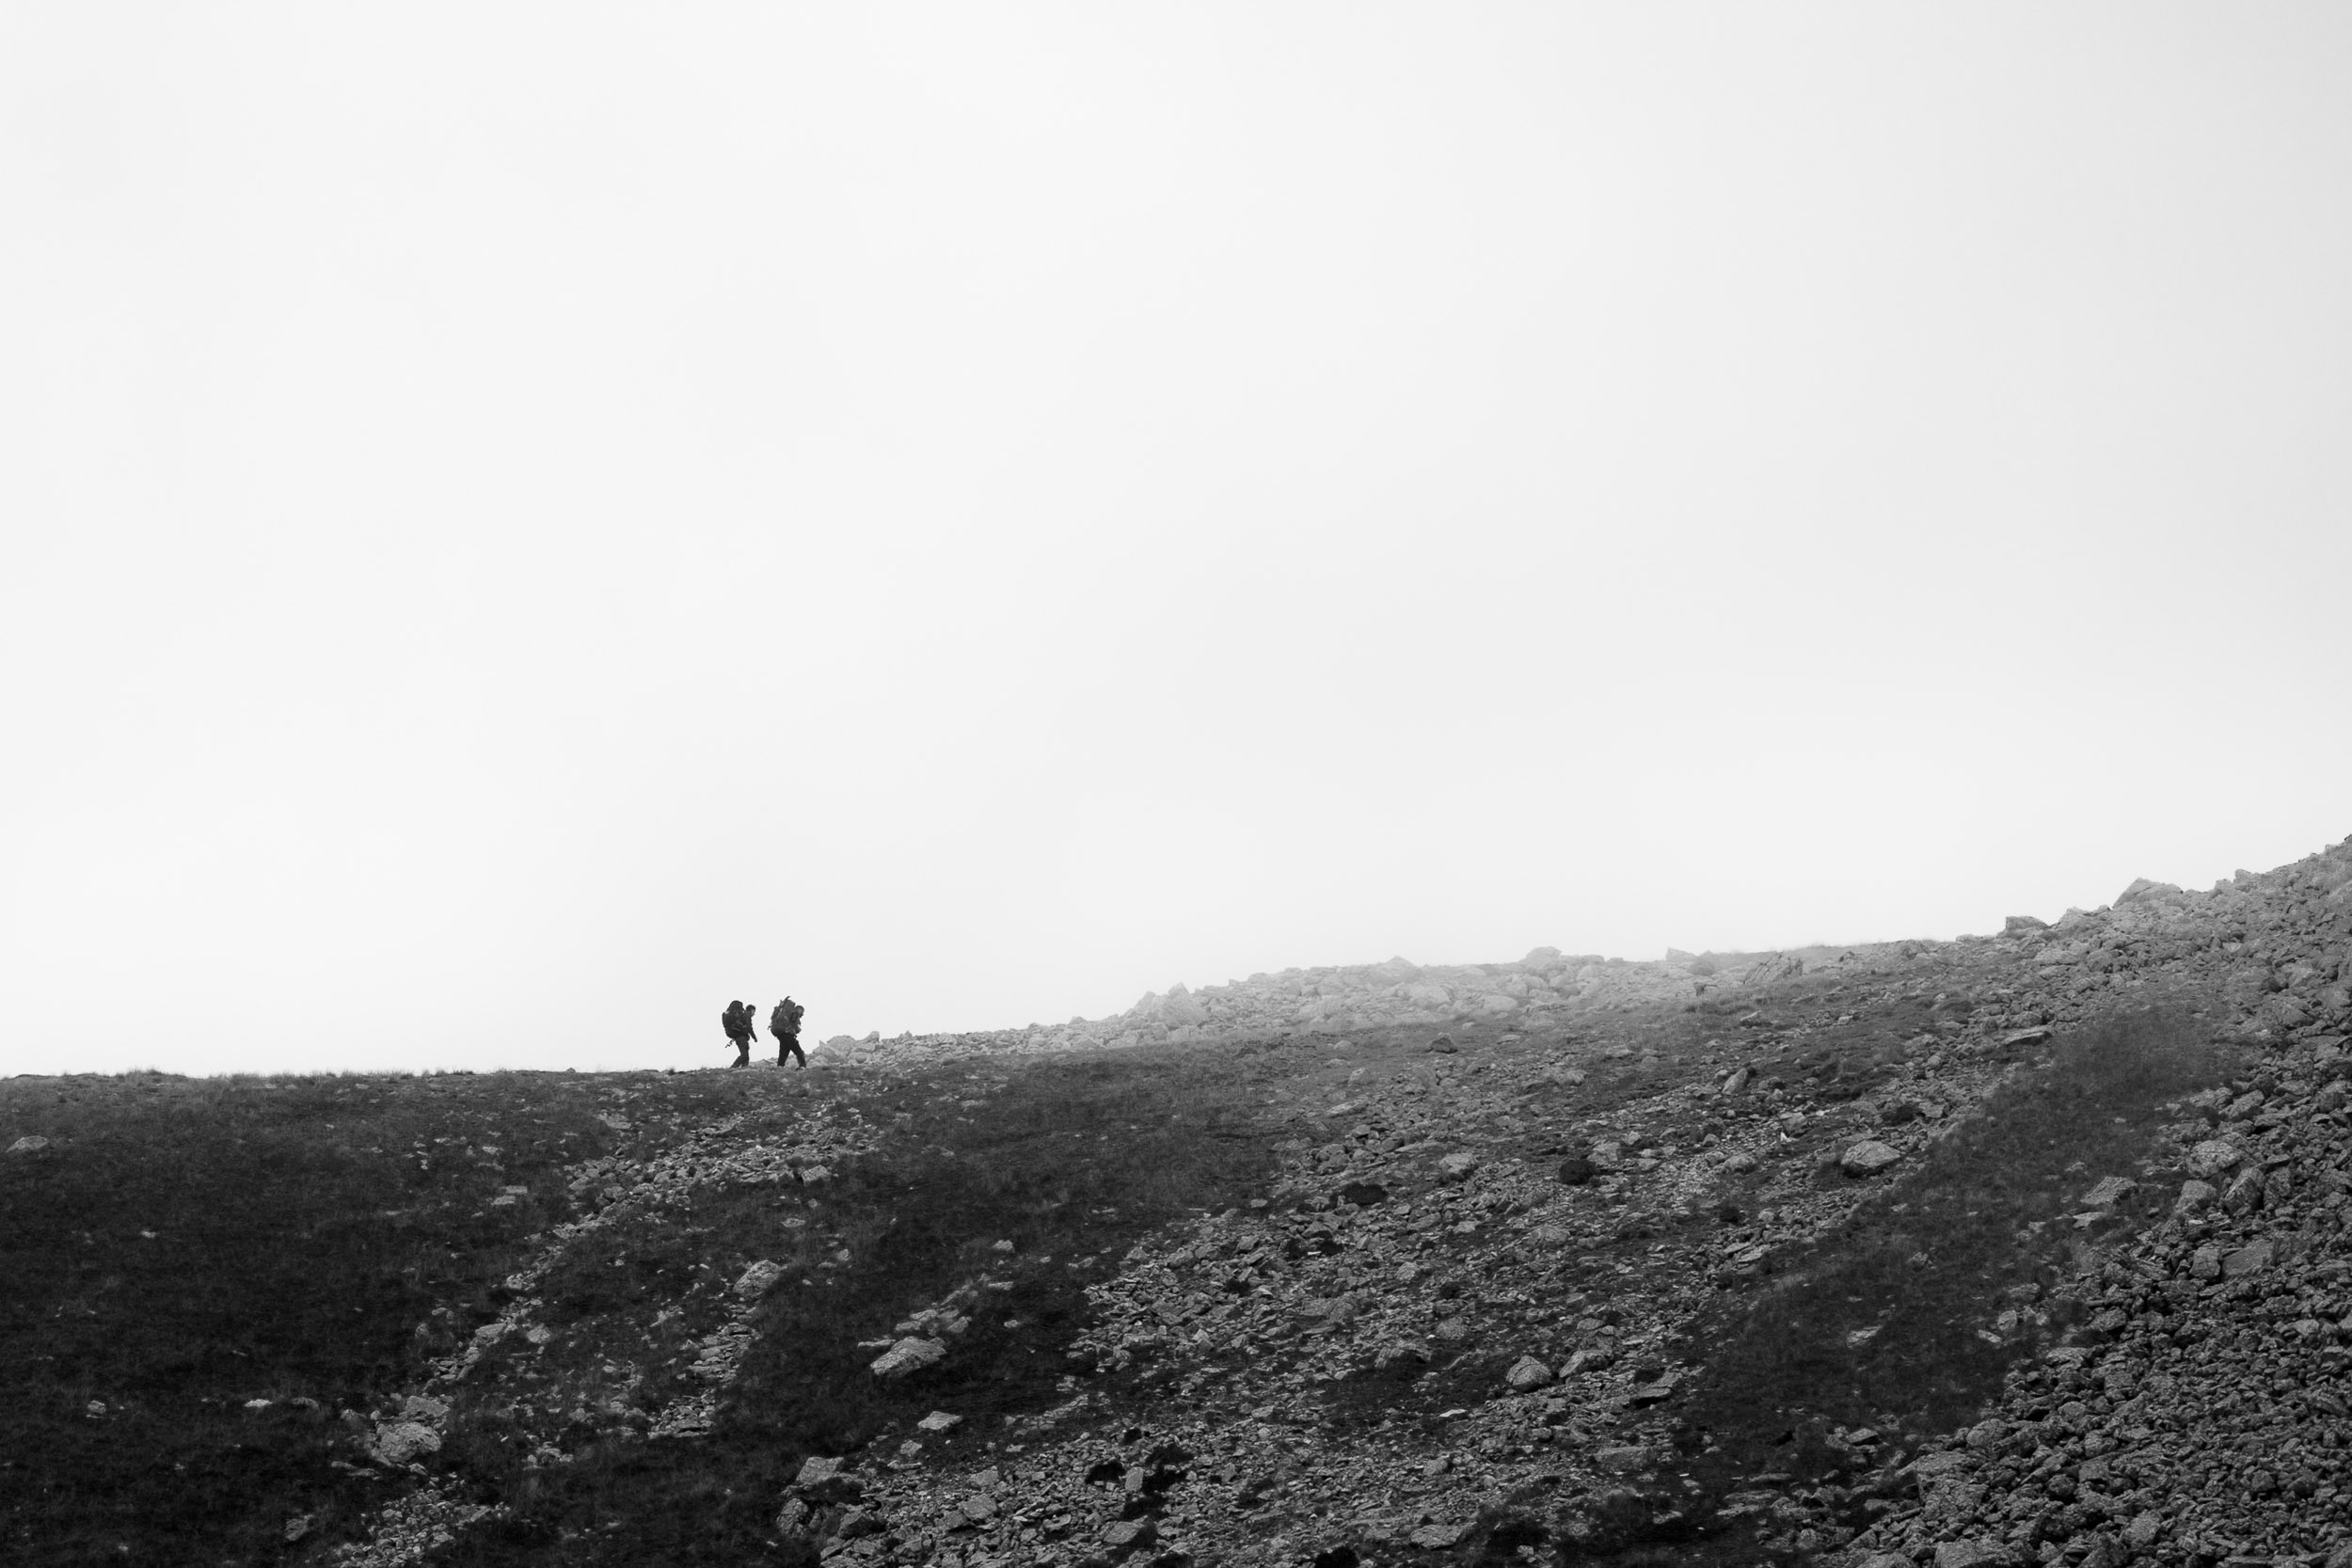 hikers ascending great end lake district national park england uk.jpg